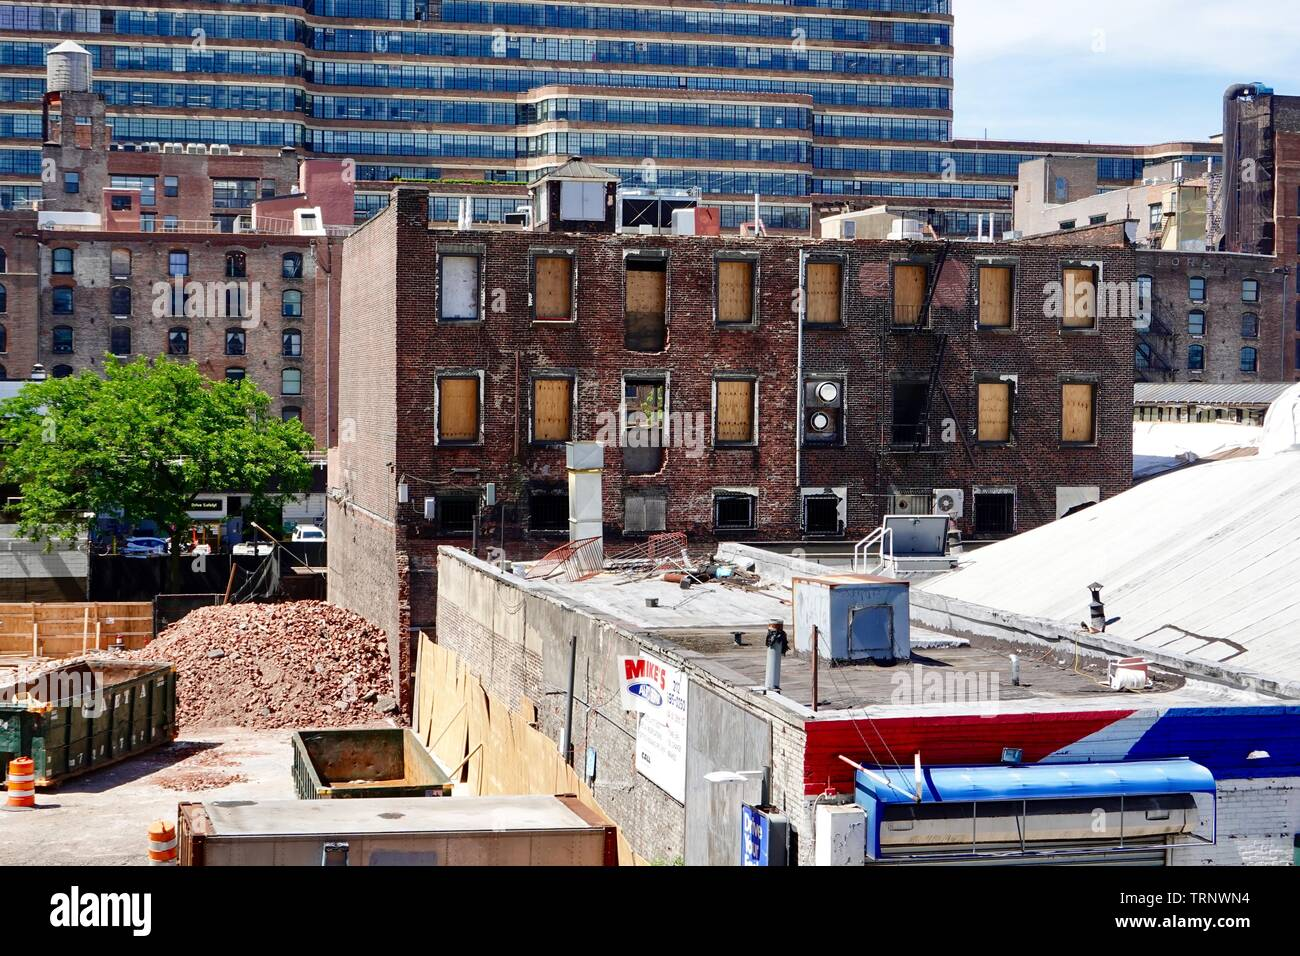 Old brick red buildings in the process of being demolished or renovated, West side of New York City, NY, USA - Stock Image